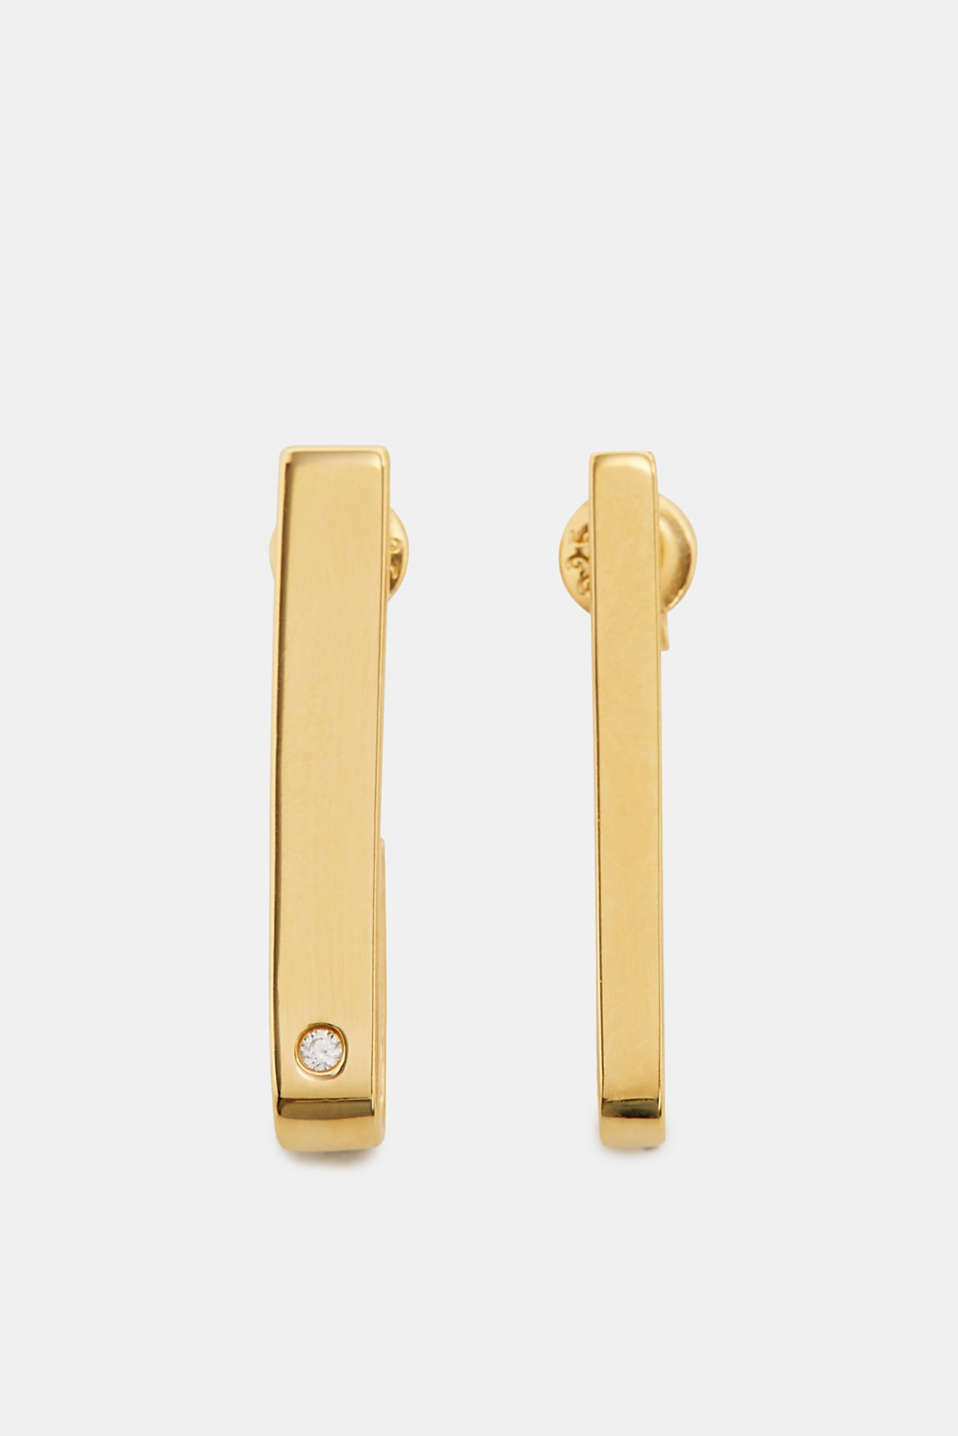 The long shape, the elegant yellow-gold plating and the single zirconia make these earrings a minimalist accessory with fine accents.